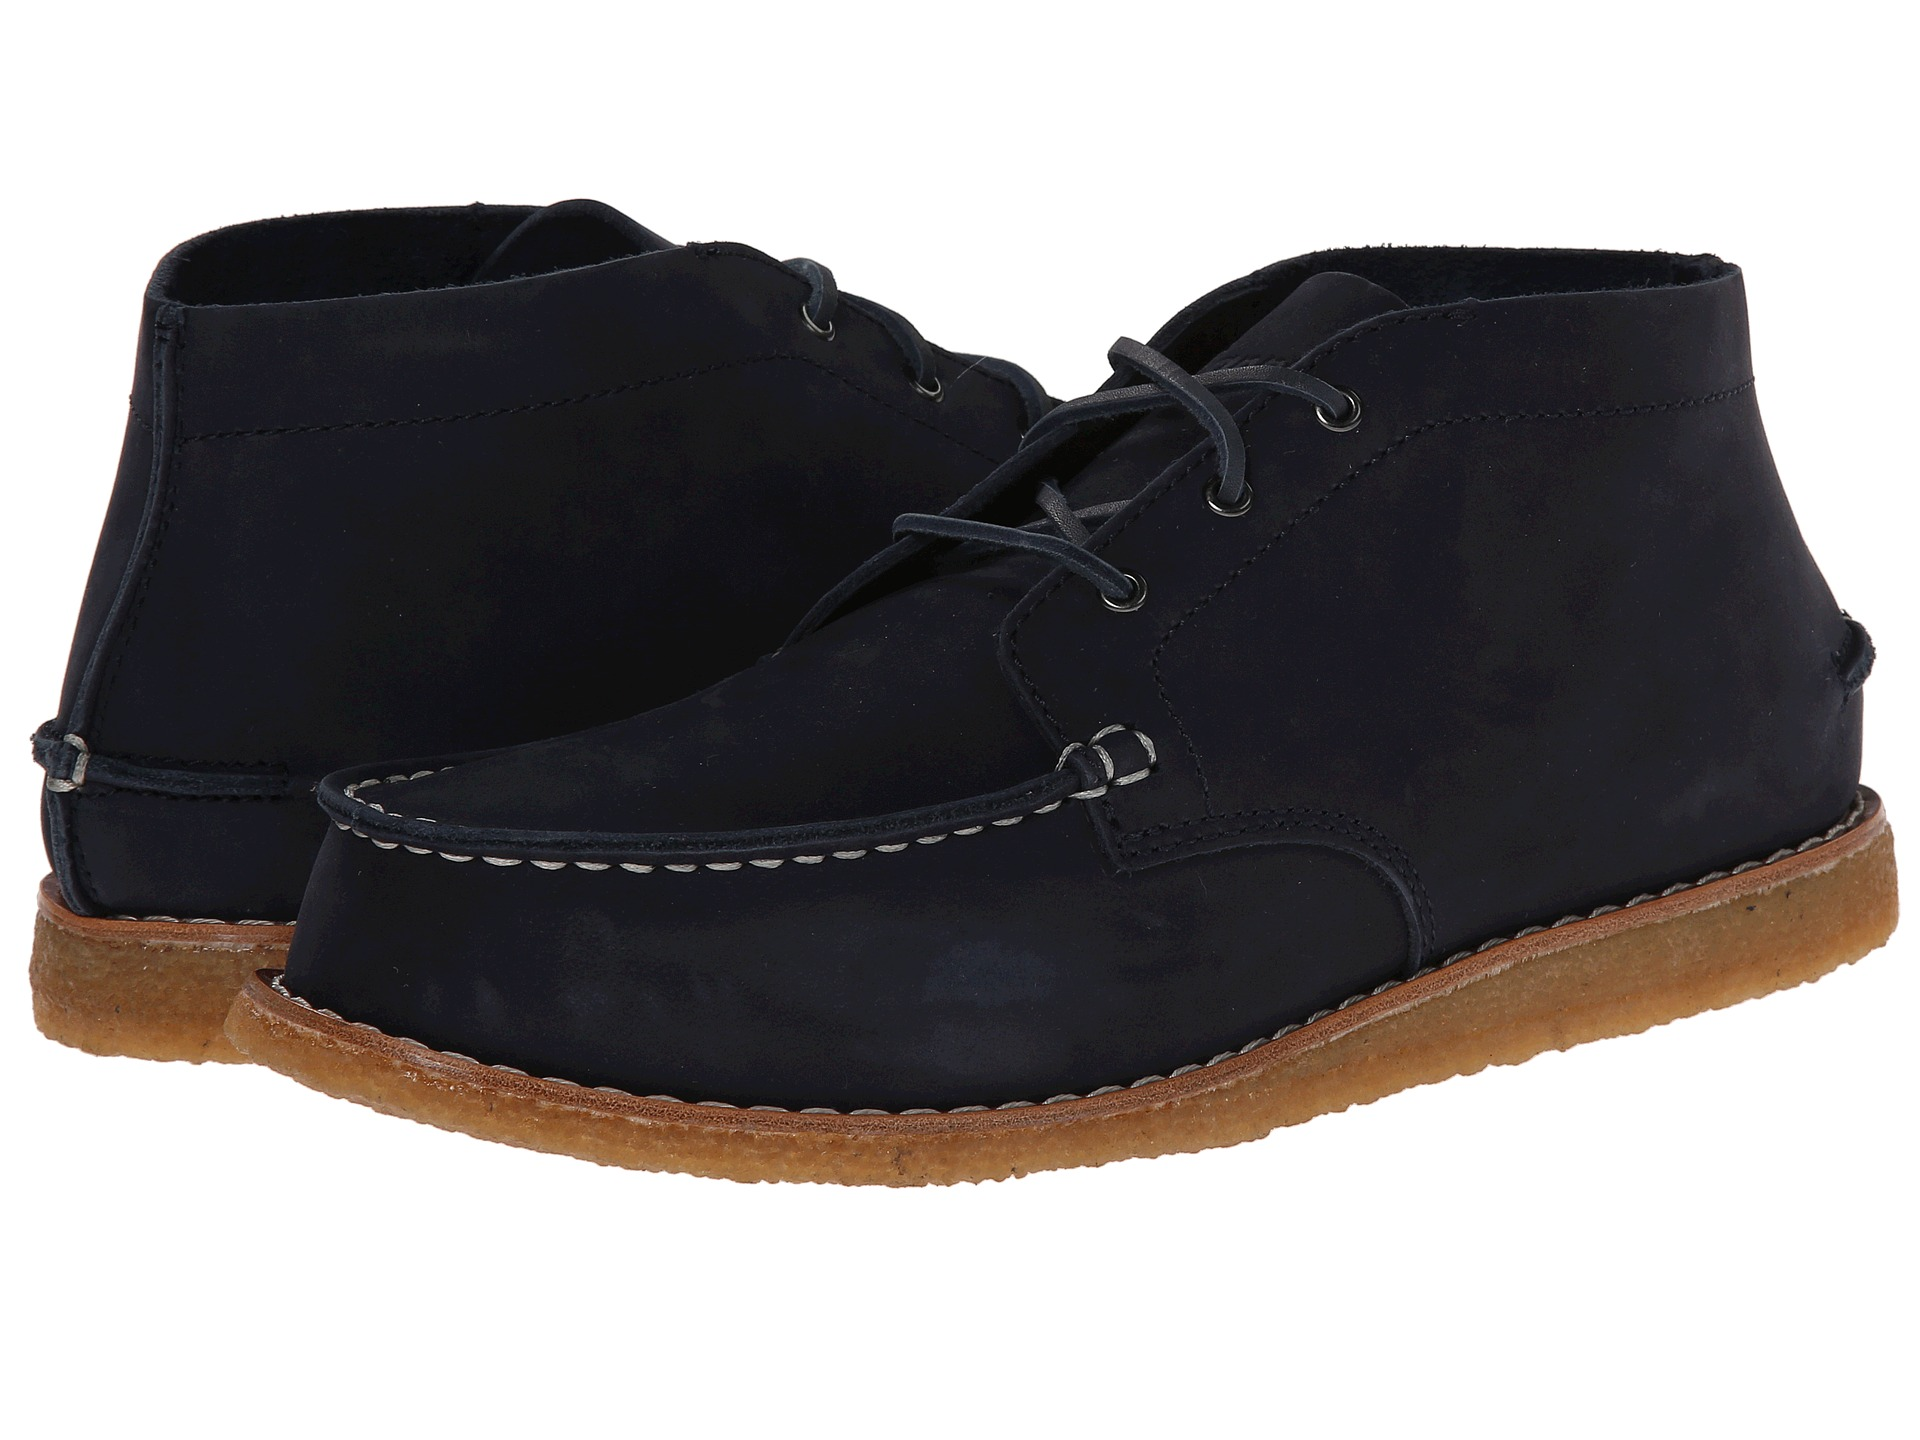 Danner Chukka Boots Coltford Boots